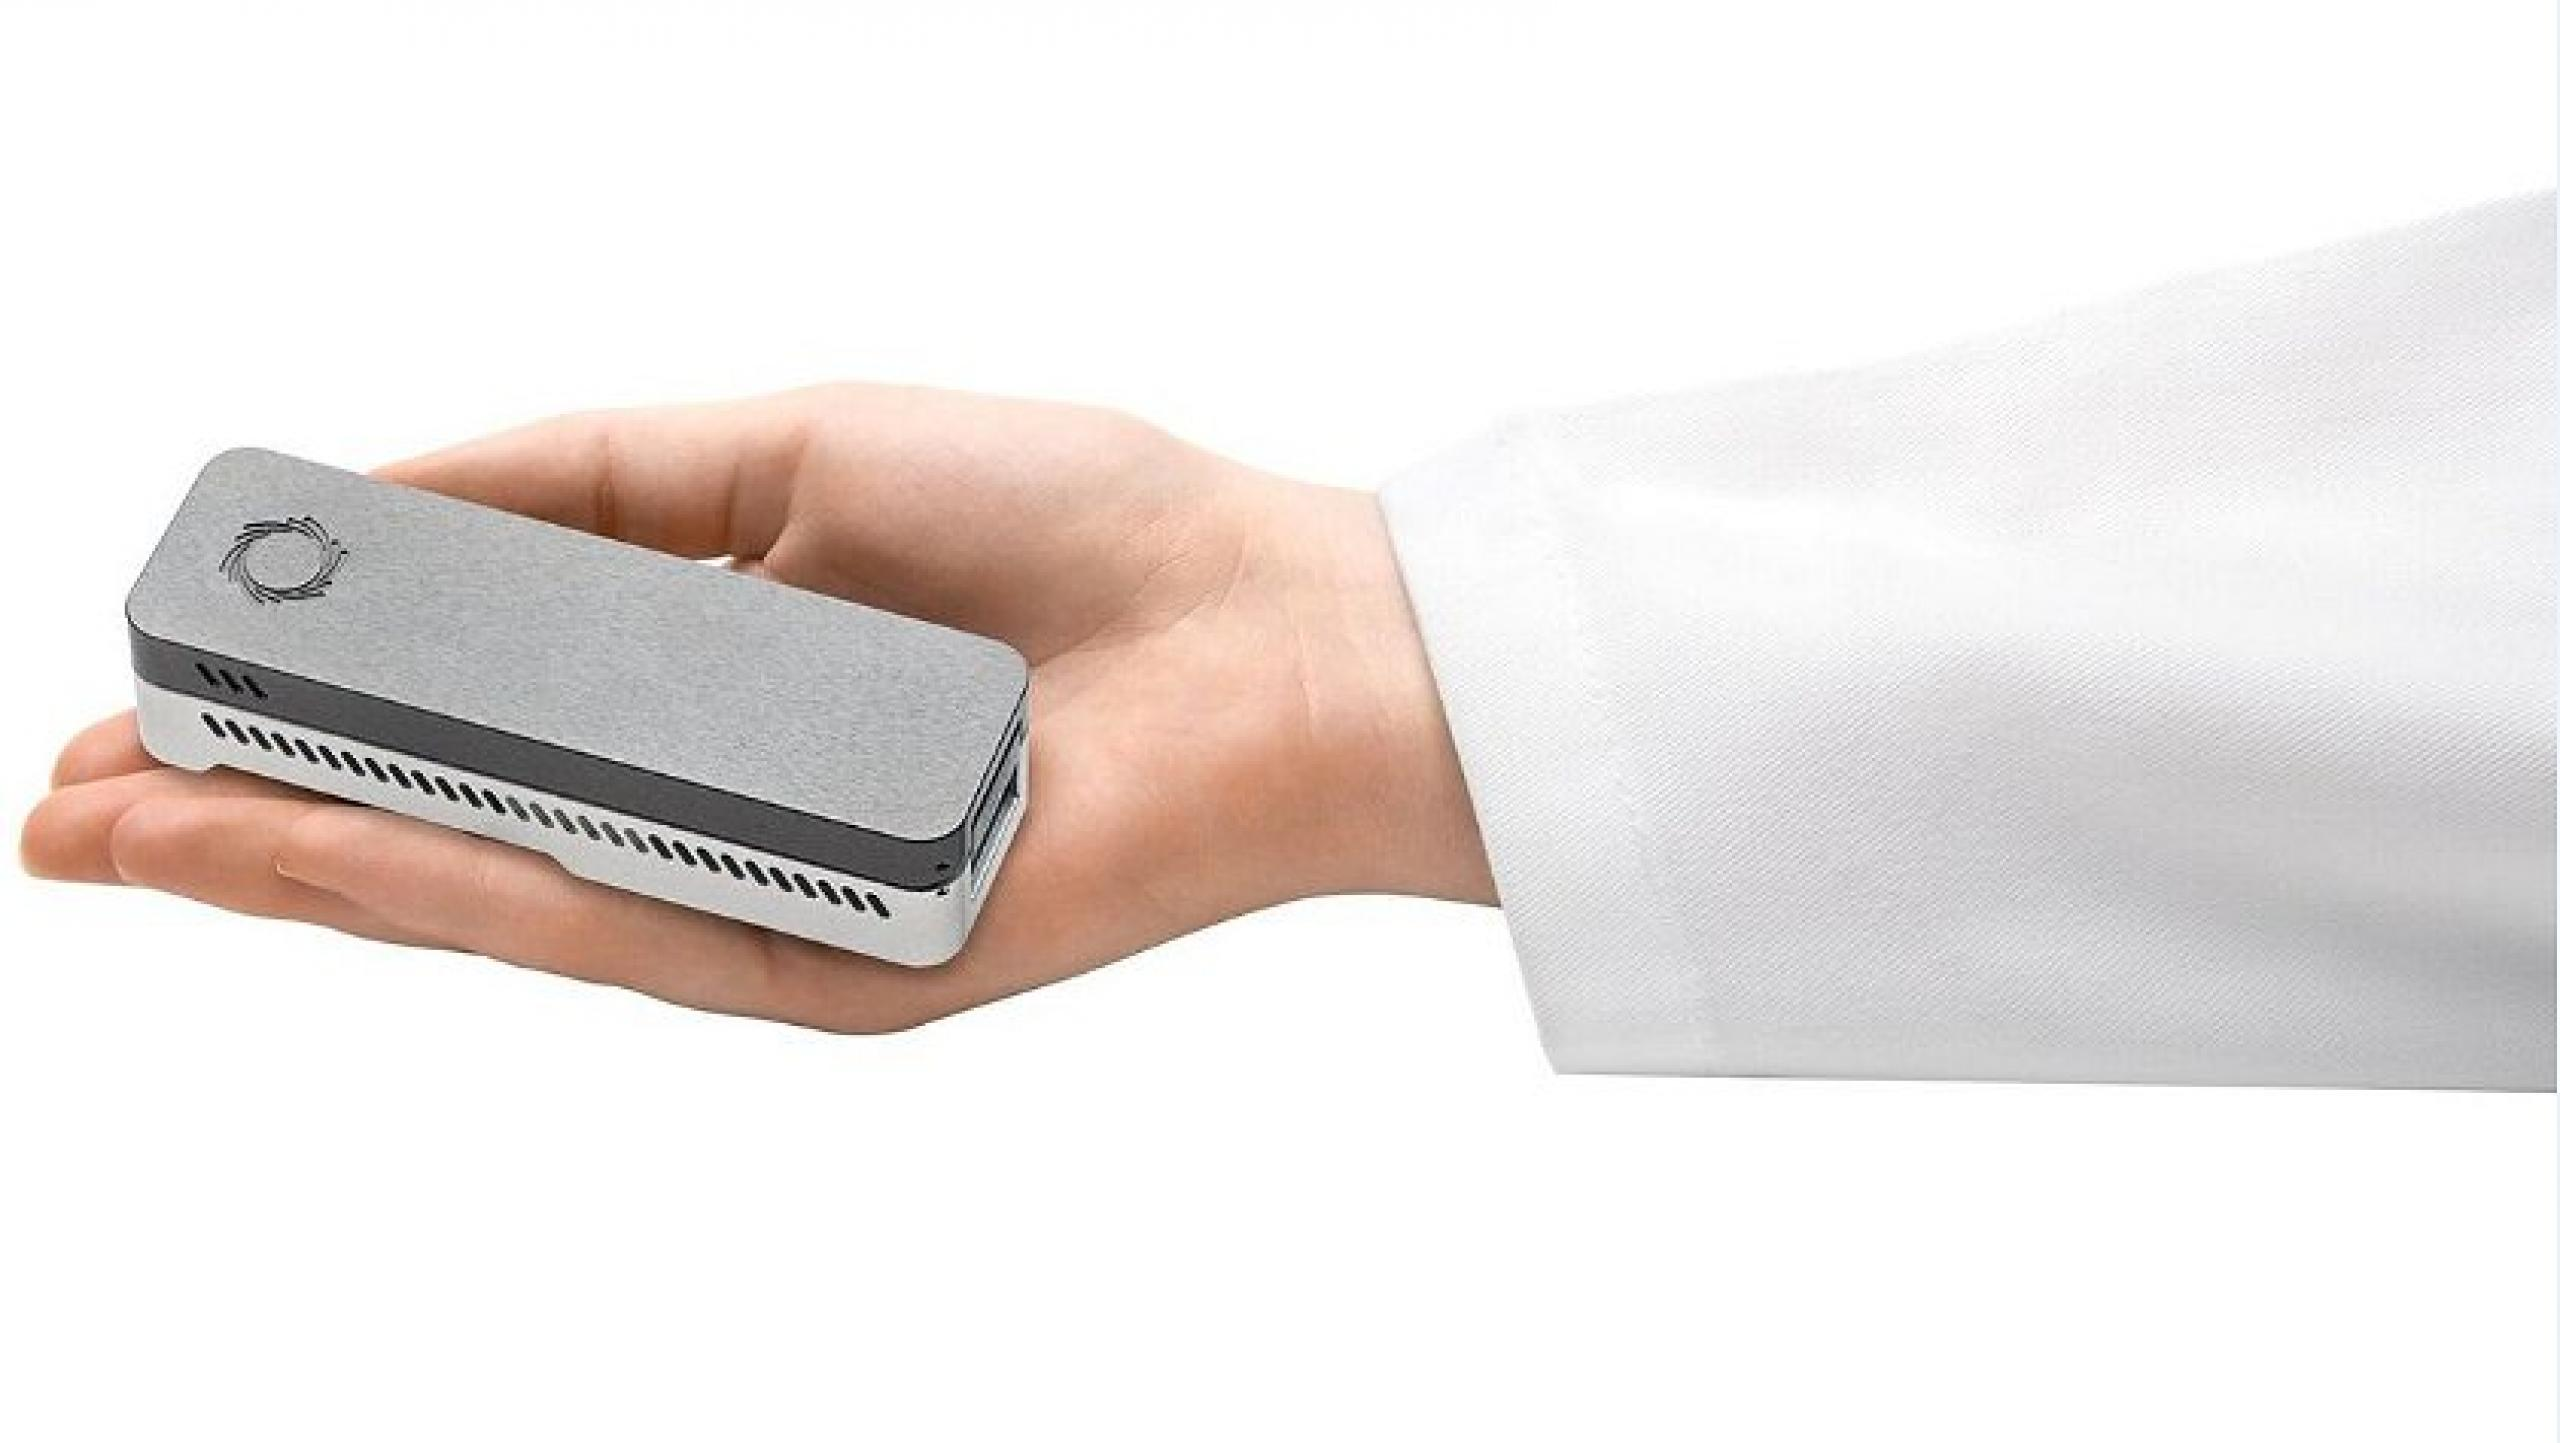 Rectangular gray equipment resting in the palm of a hand.